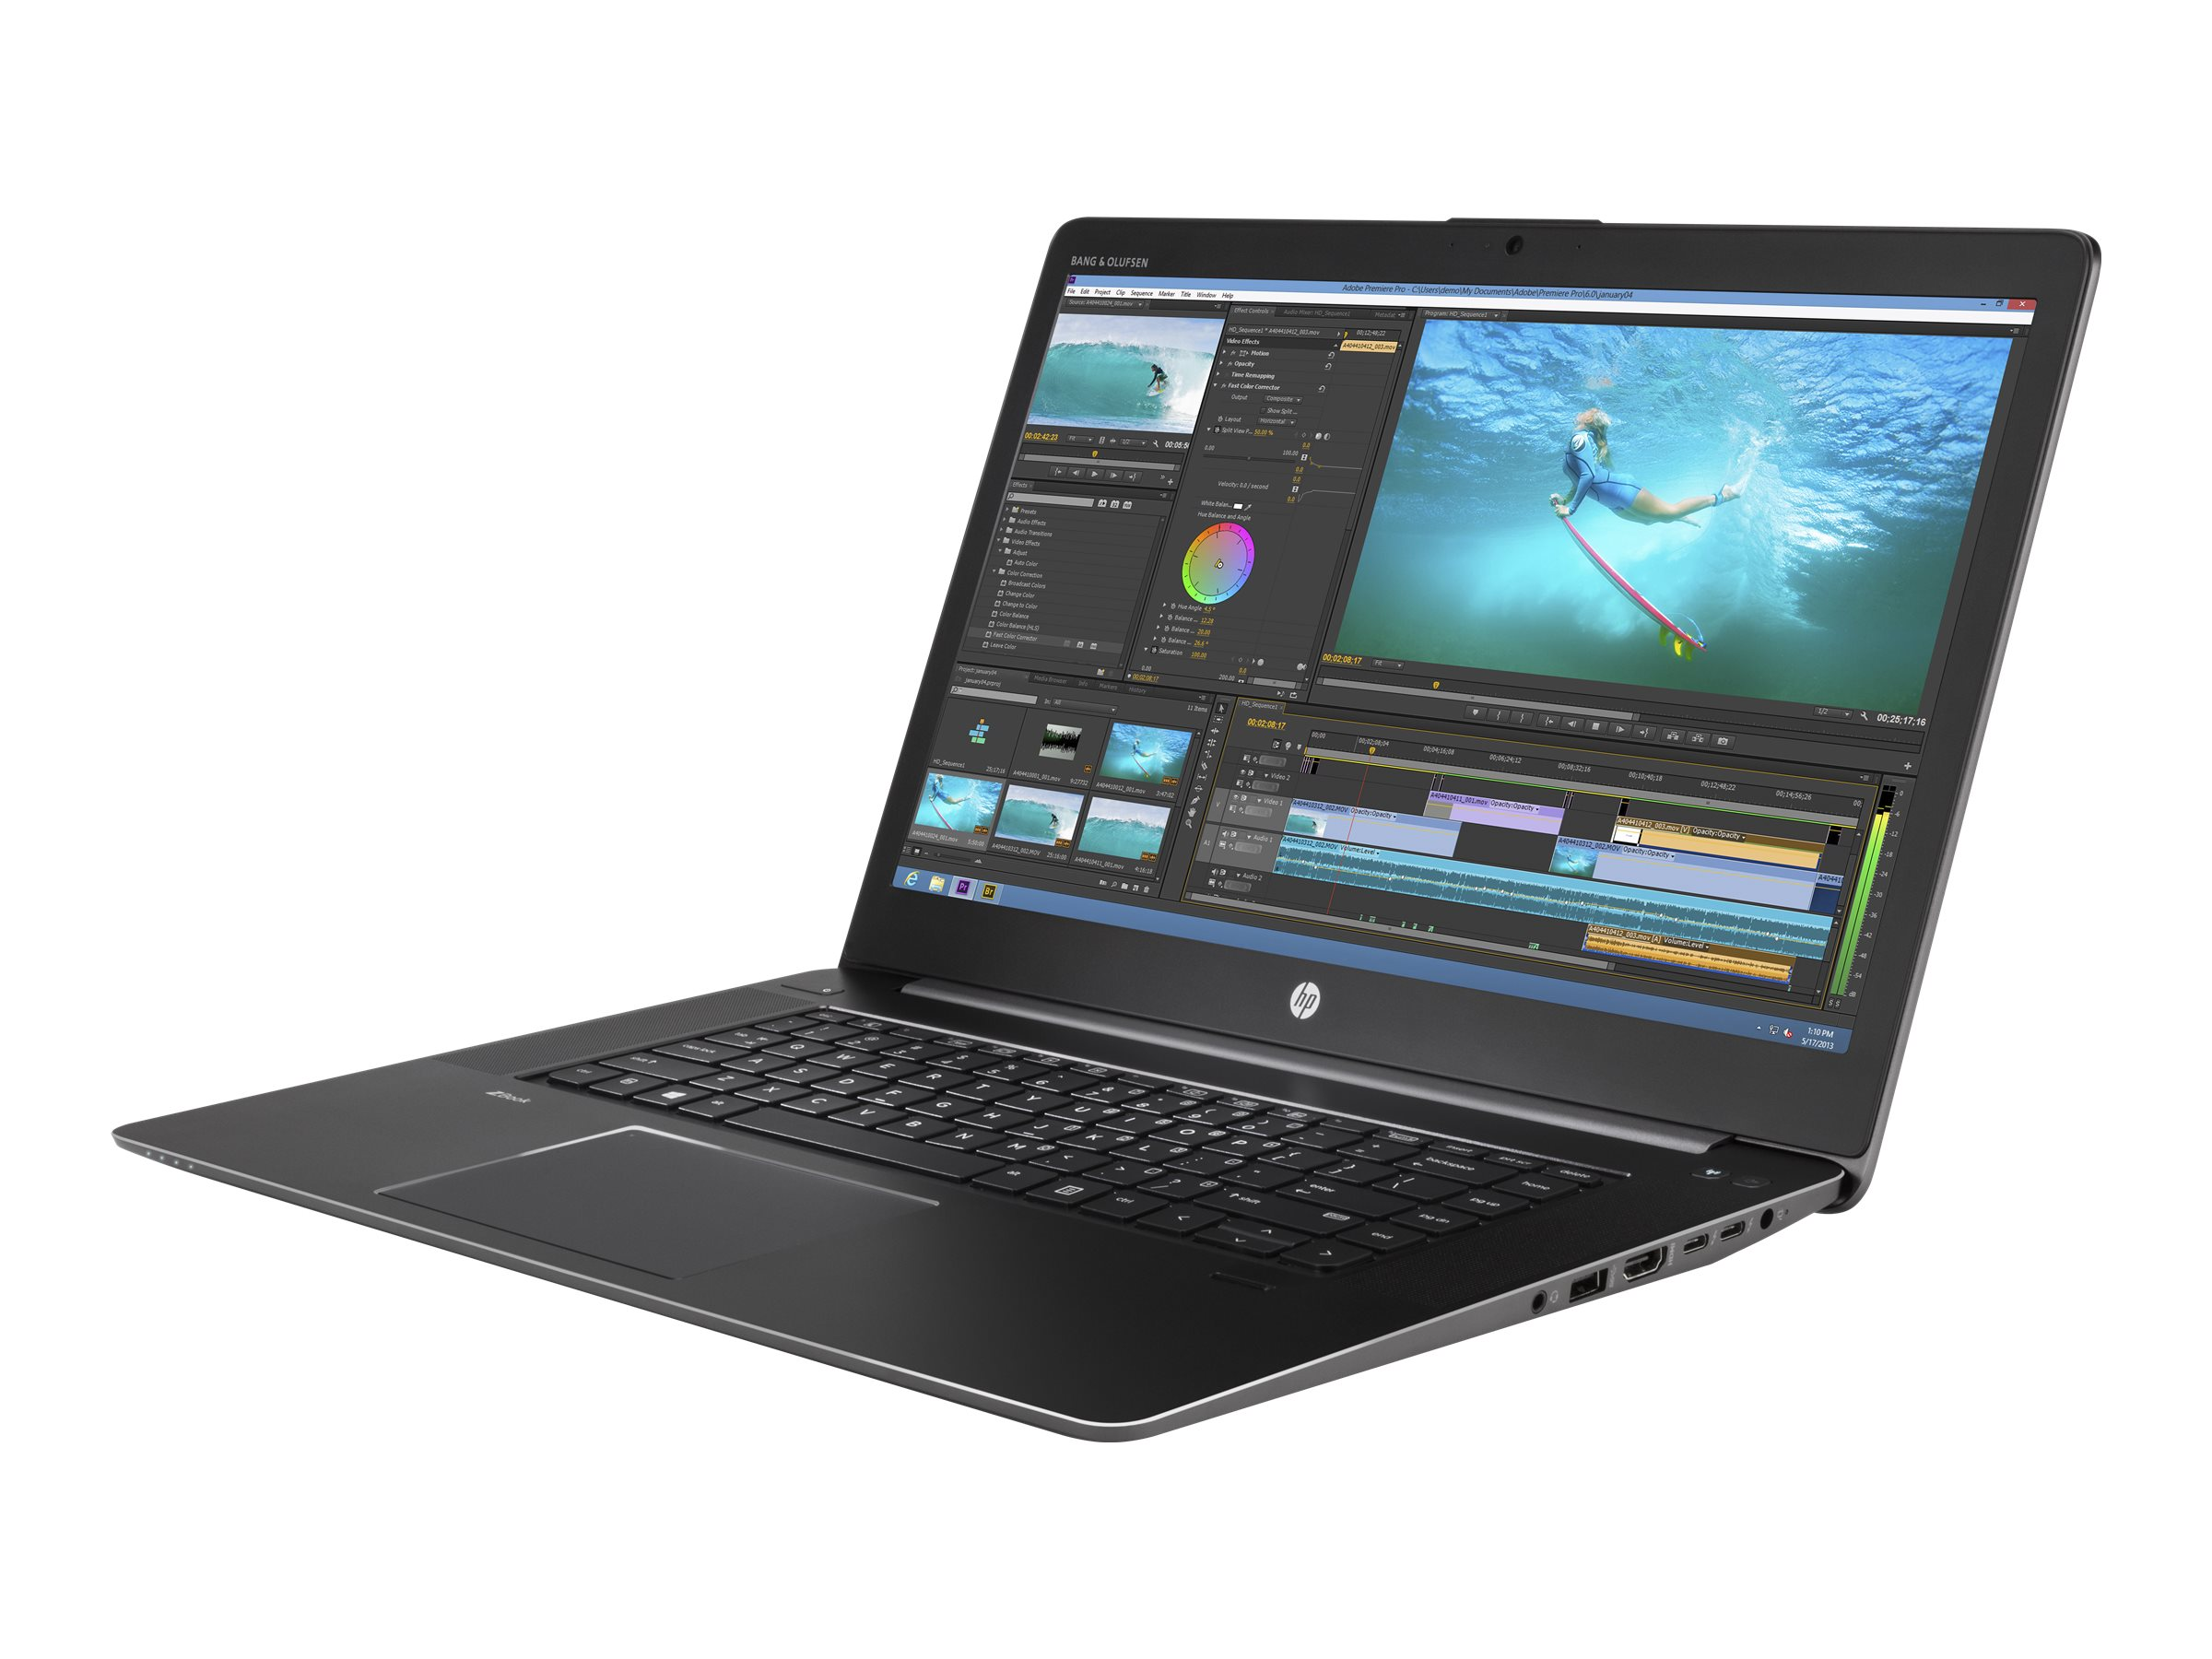 HP Smart Buy ZBook Studio G3 2.6GHz Core i7 15.6in display, T6E16UT#ABA, 31058053, Workstations - Mobile